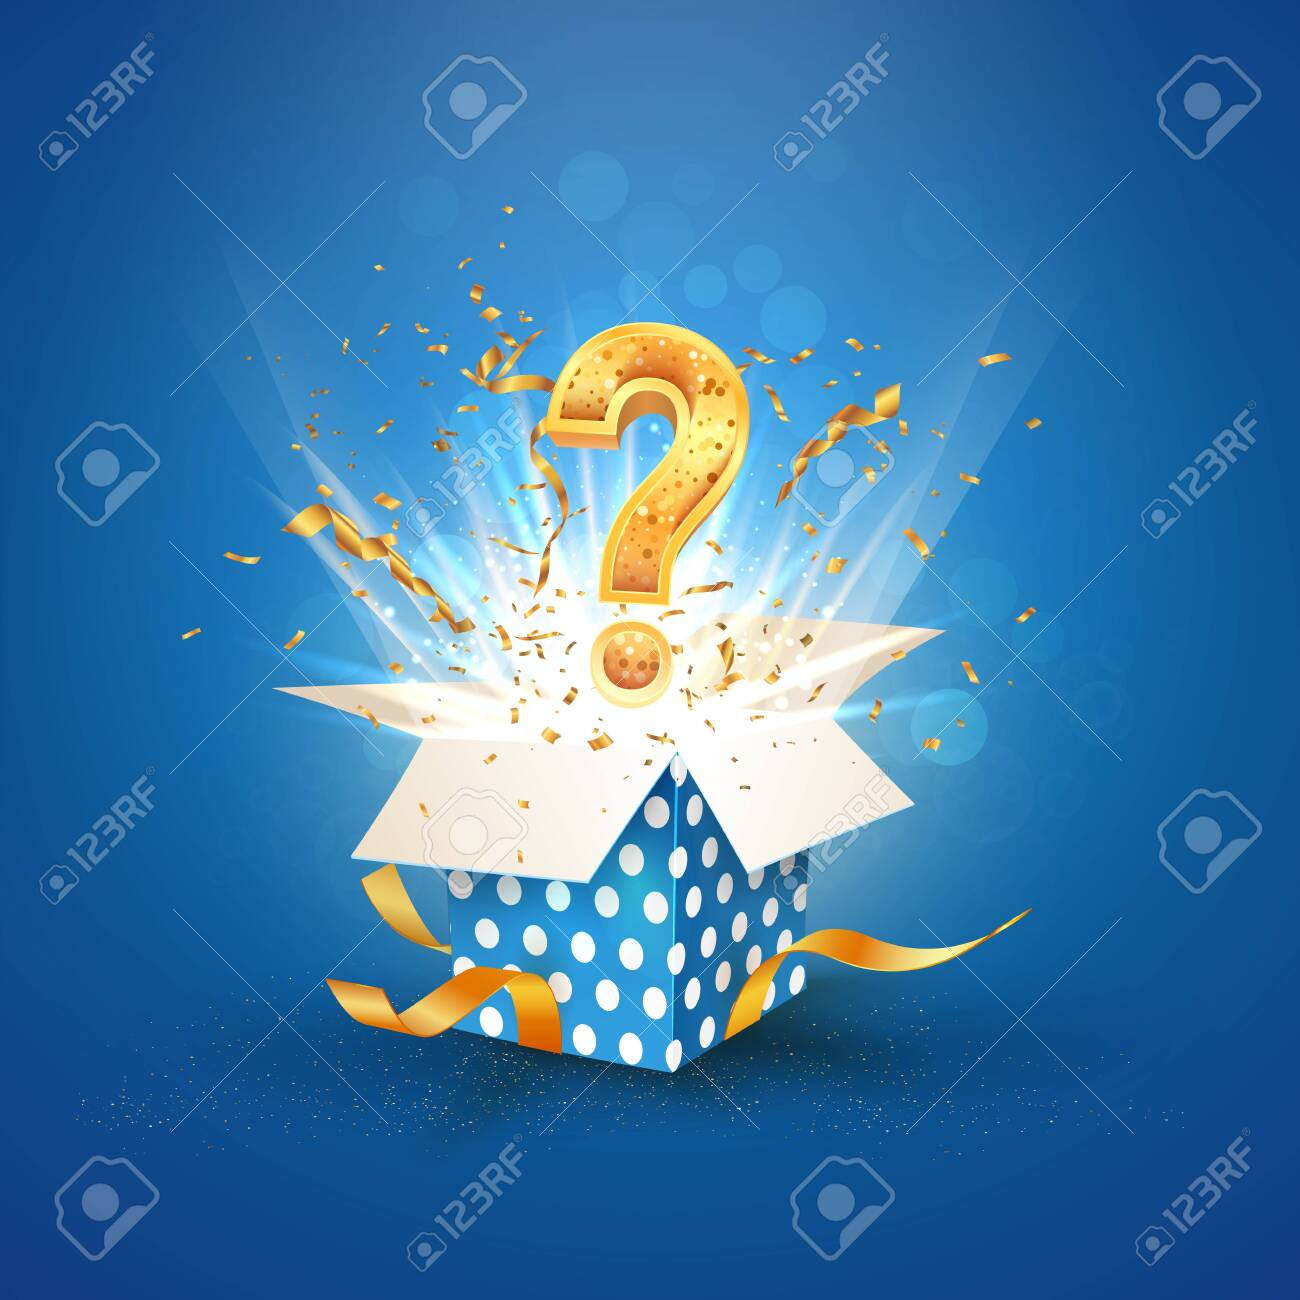 Open textured blue box with question sign and confetti explosion inside and on blue background. Lottery vector illustration - 131986433